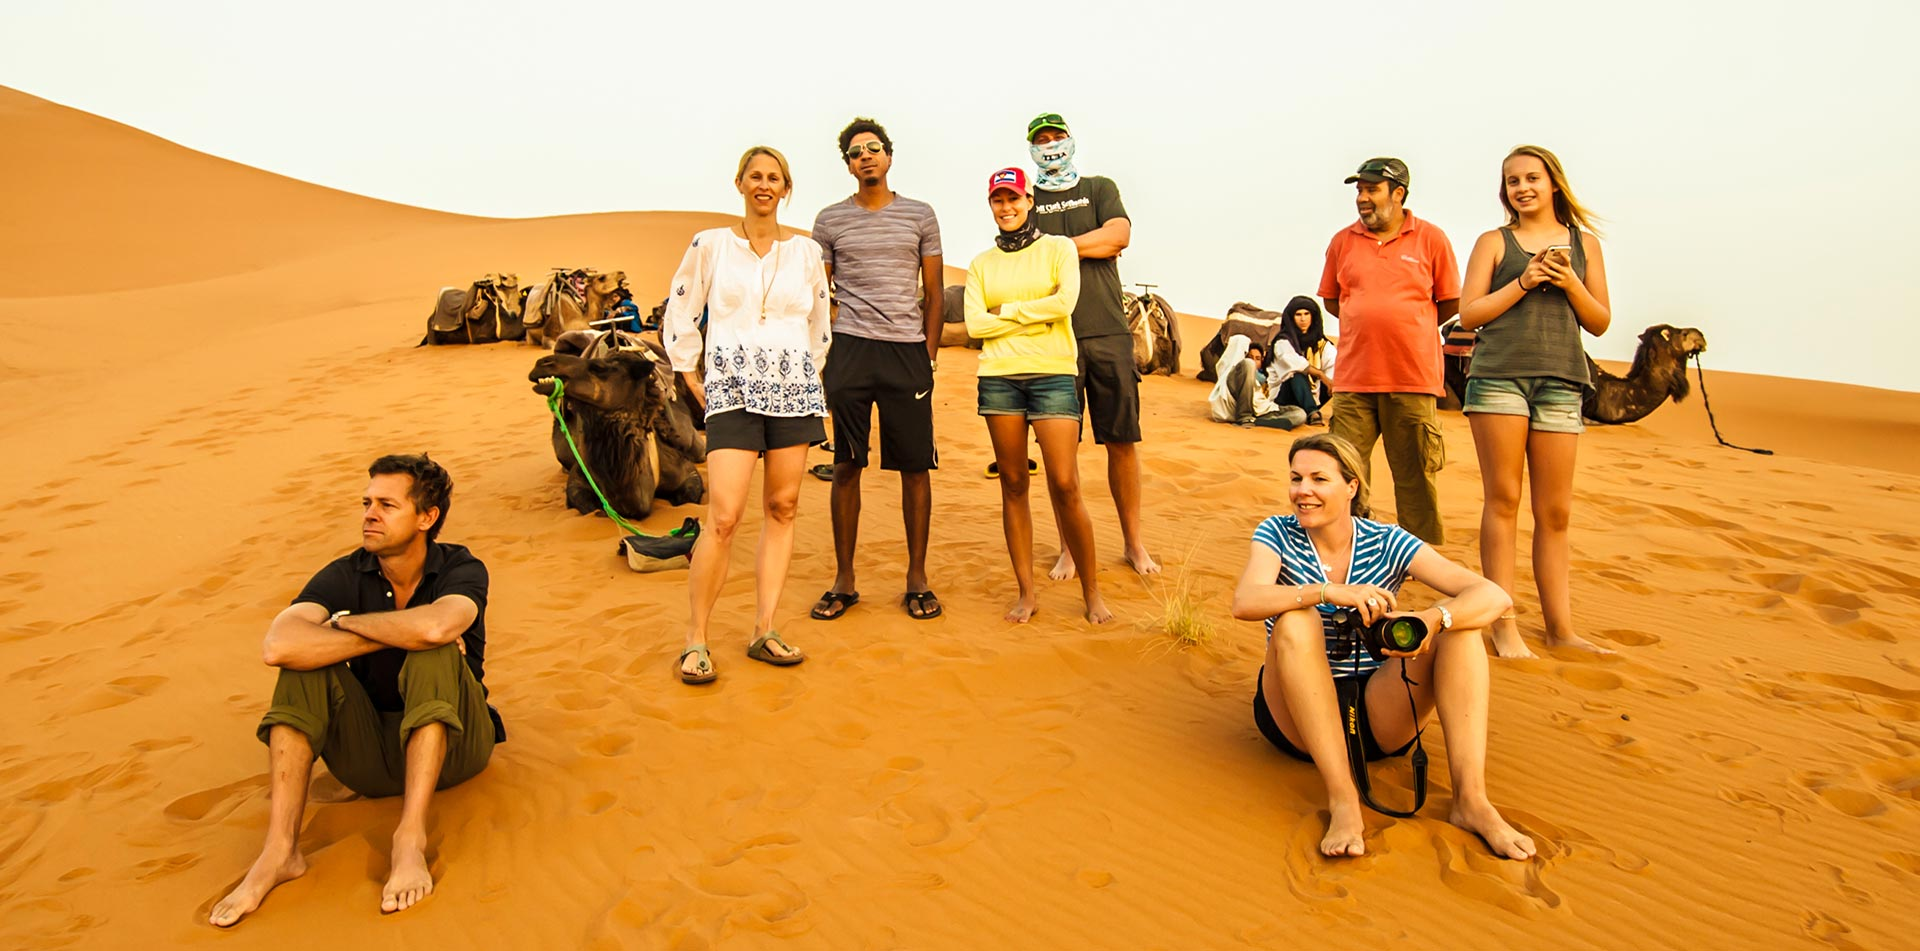 Africa Morocco Sahara Desert happy group posing in tan sand dunes camels resting - luxury vacation destinations